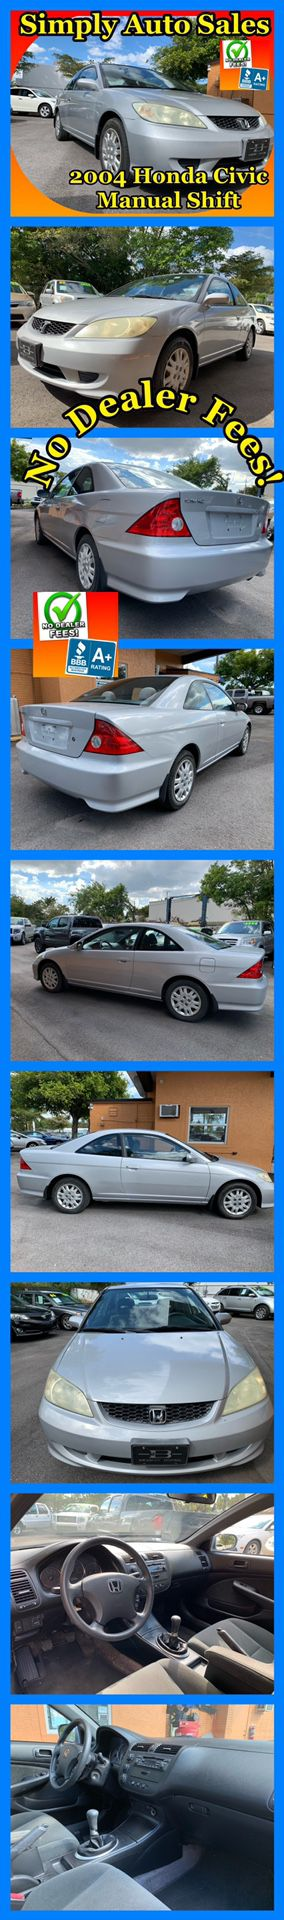 2004 Honda Civic Coupe for Sale in Palm Beach Gardens, FL